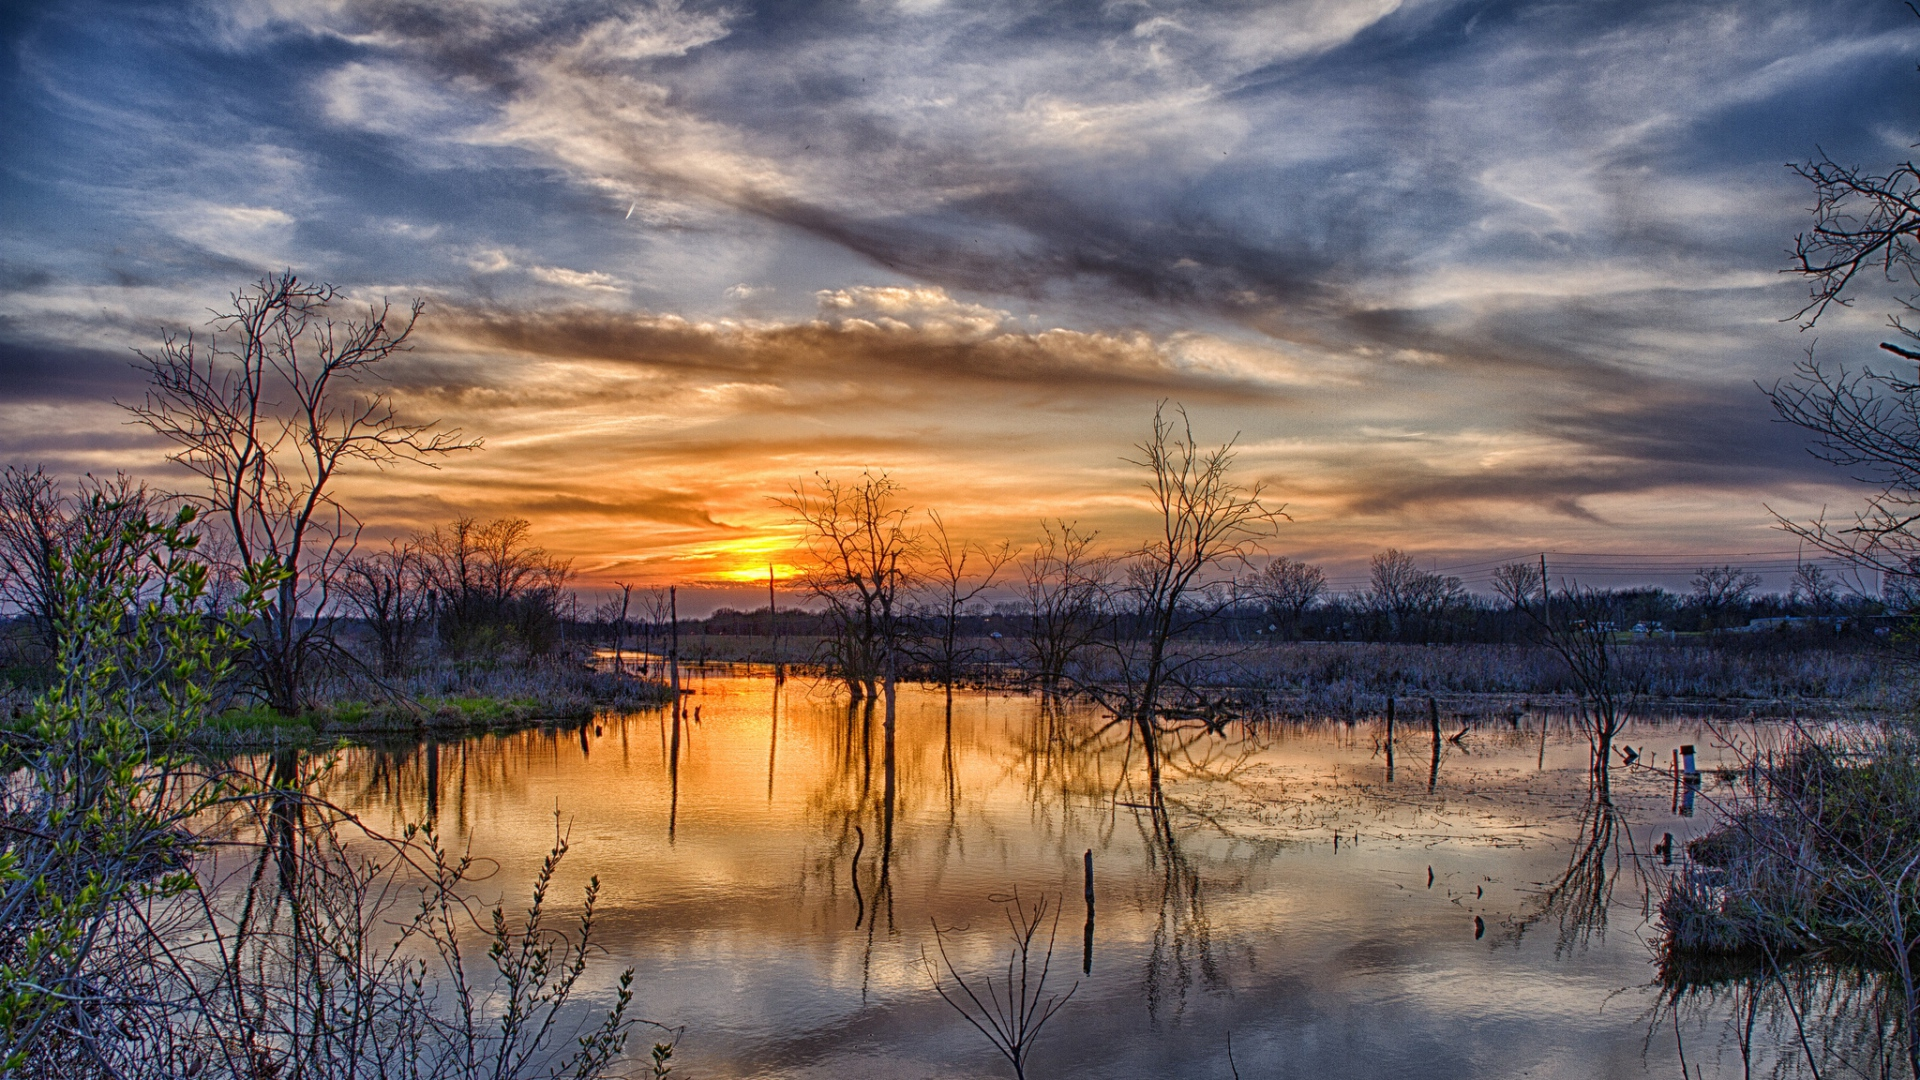 Earnings Disclaimer >> Download Wallpaper 1920x1080 spring, flood, trees, sunset ...